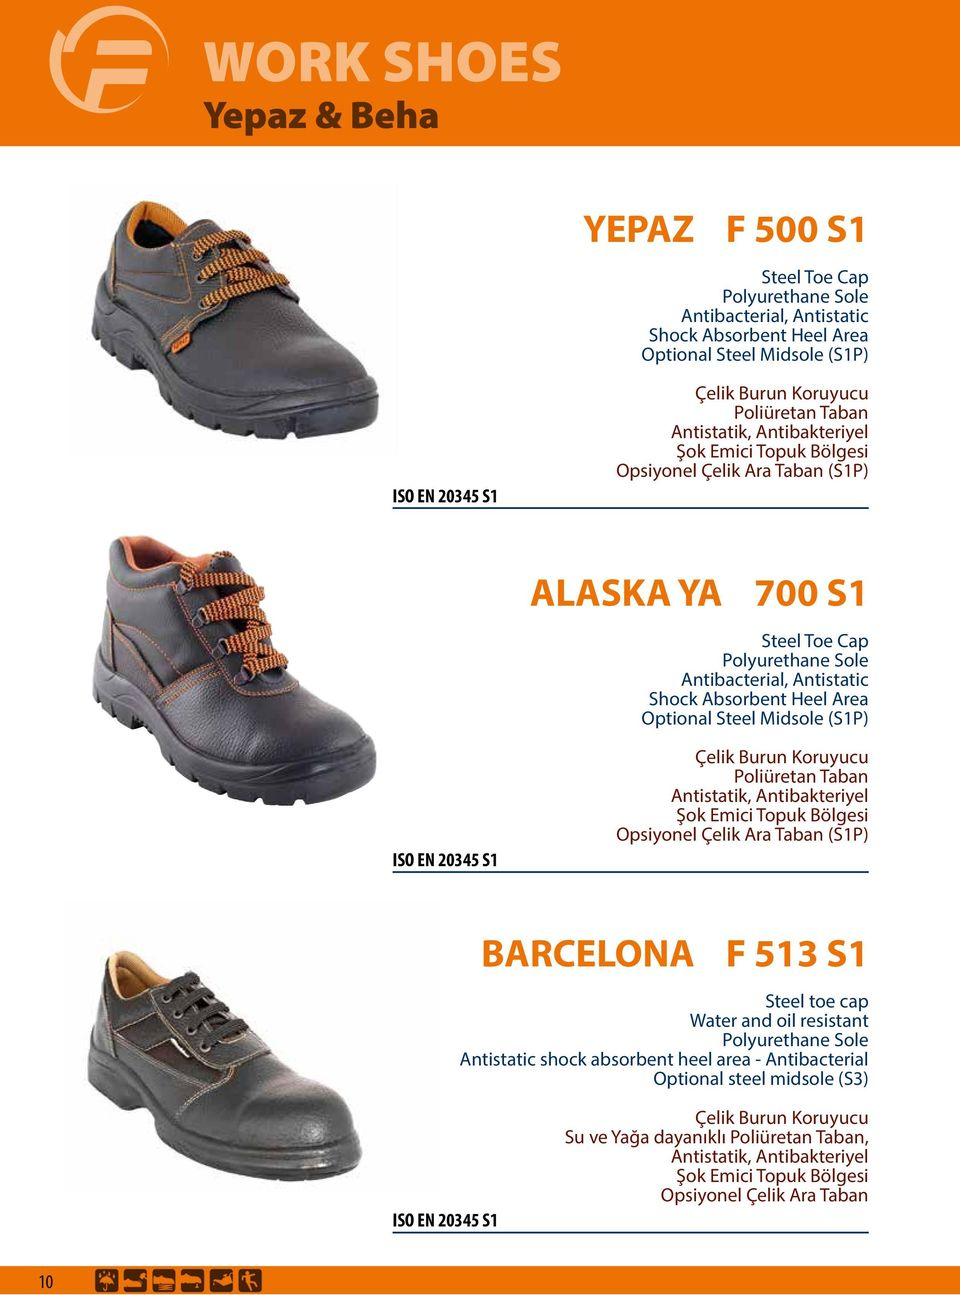 Midsole (S1P) BARCELONA F 513 S1 Steel toe cap Water and oil resistant Antistatic shock absorbent